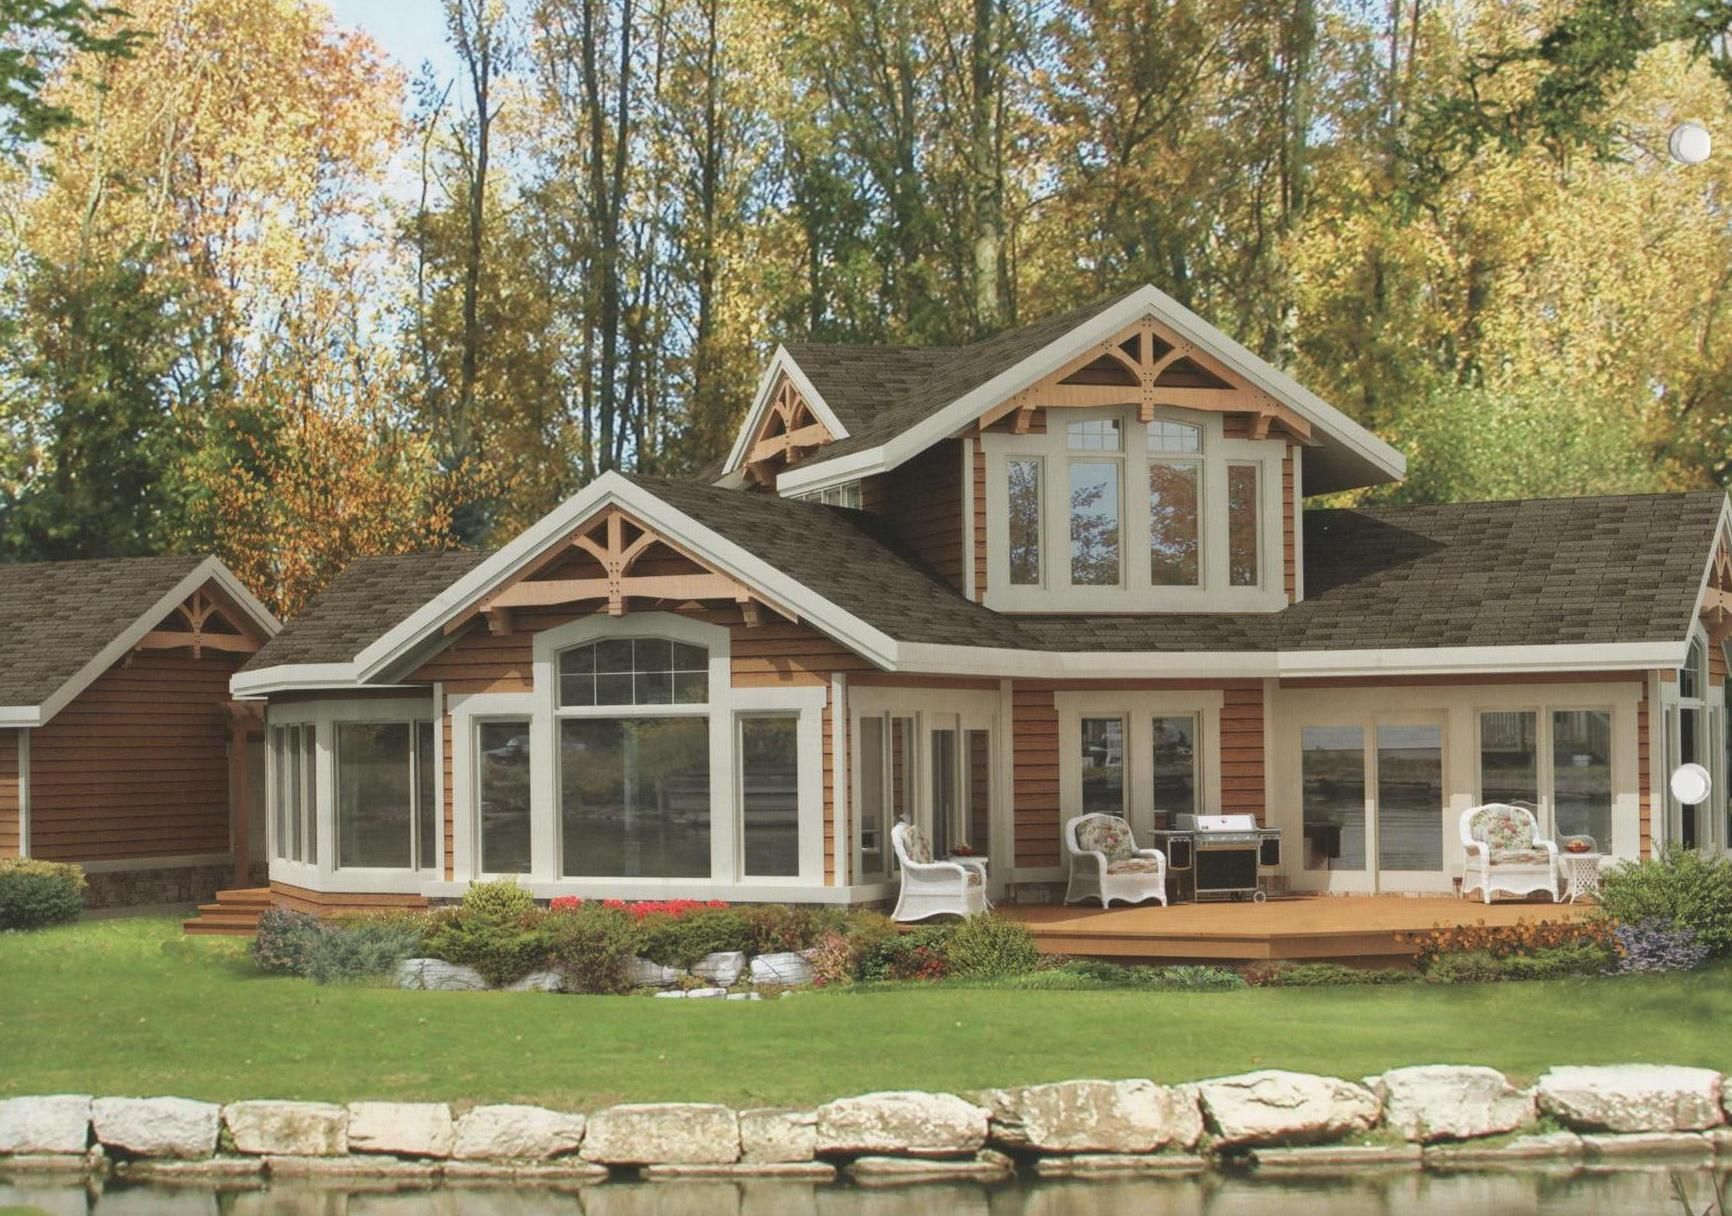 Architectural post beam series viceroy homes for Viceroy homes models